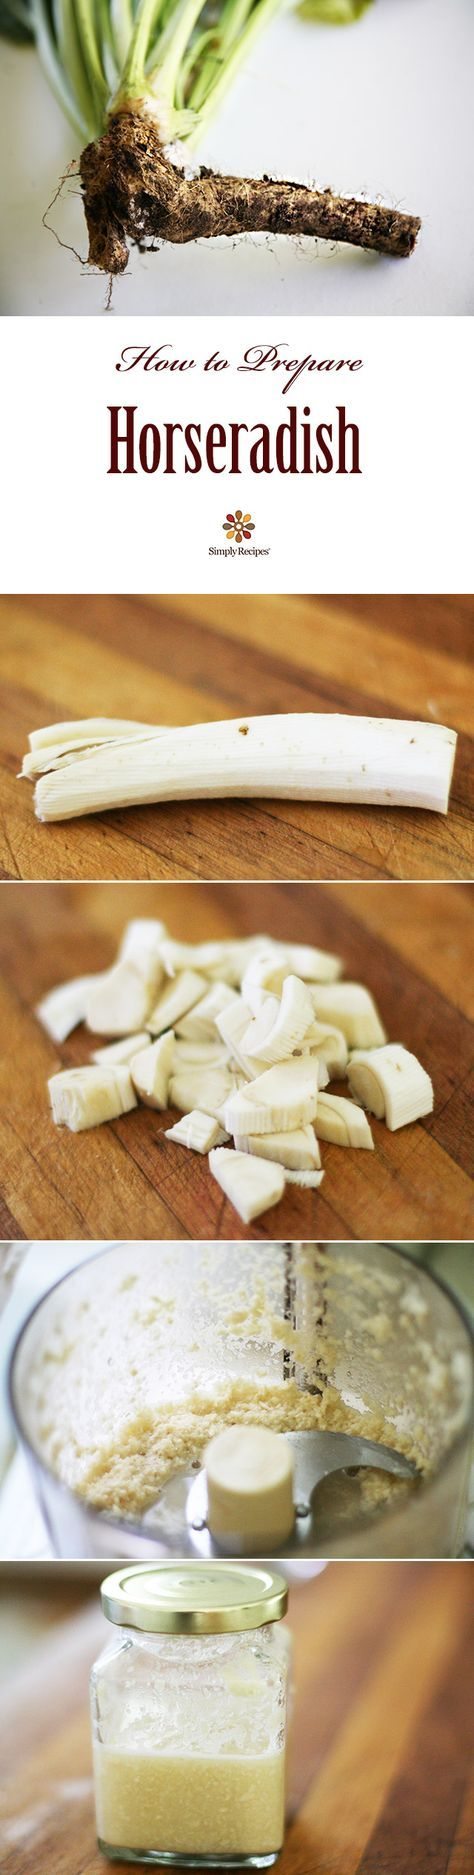 How to Prepare Horseradish ~ How to make homemade horseradish by grating horseradish root and adding vinegar. ~ SimplyRecipes.com